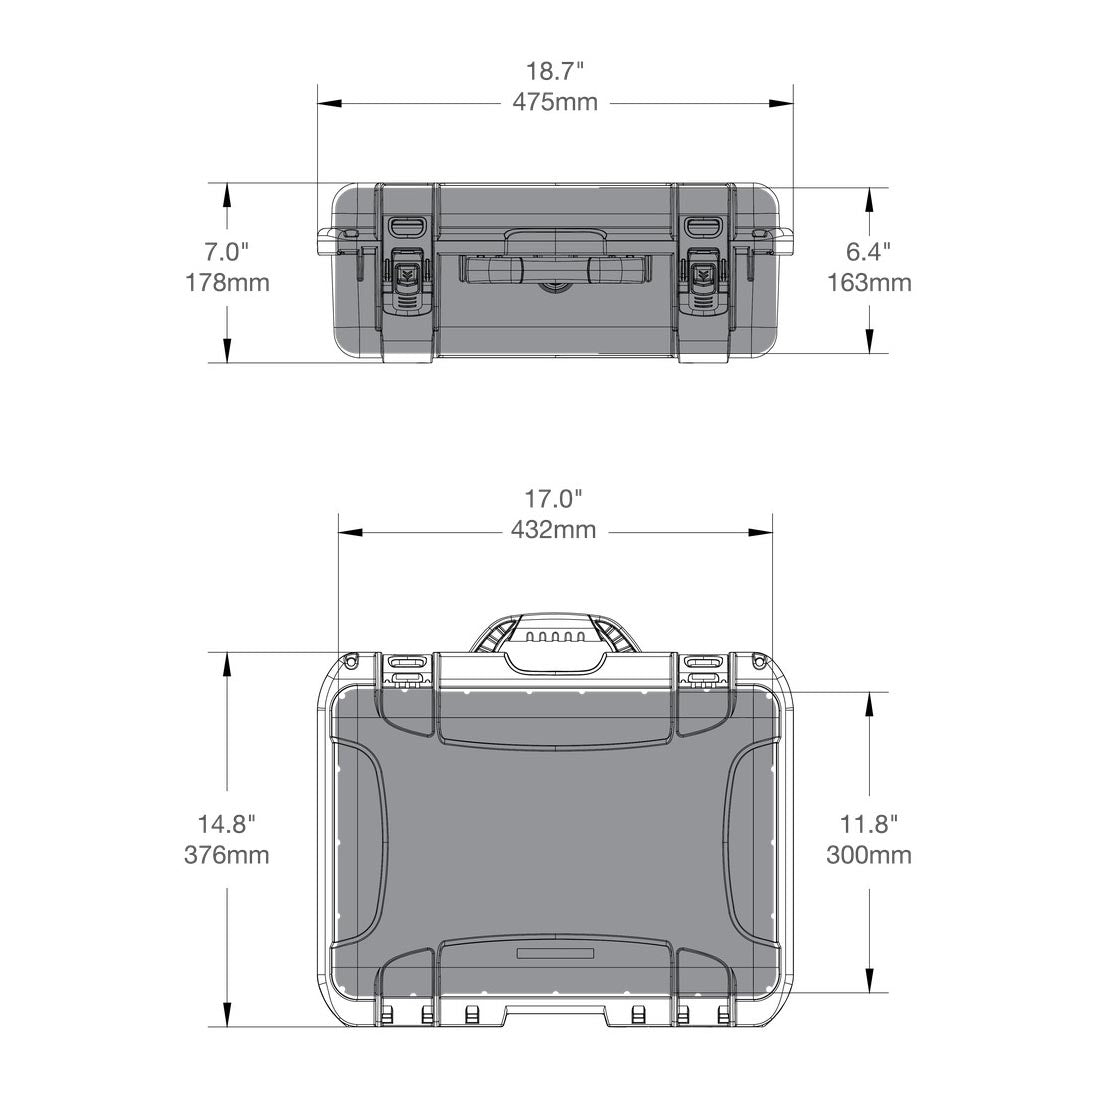 NANUK 925 Hard Case Specifications Dimensions